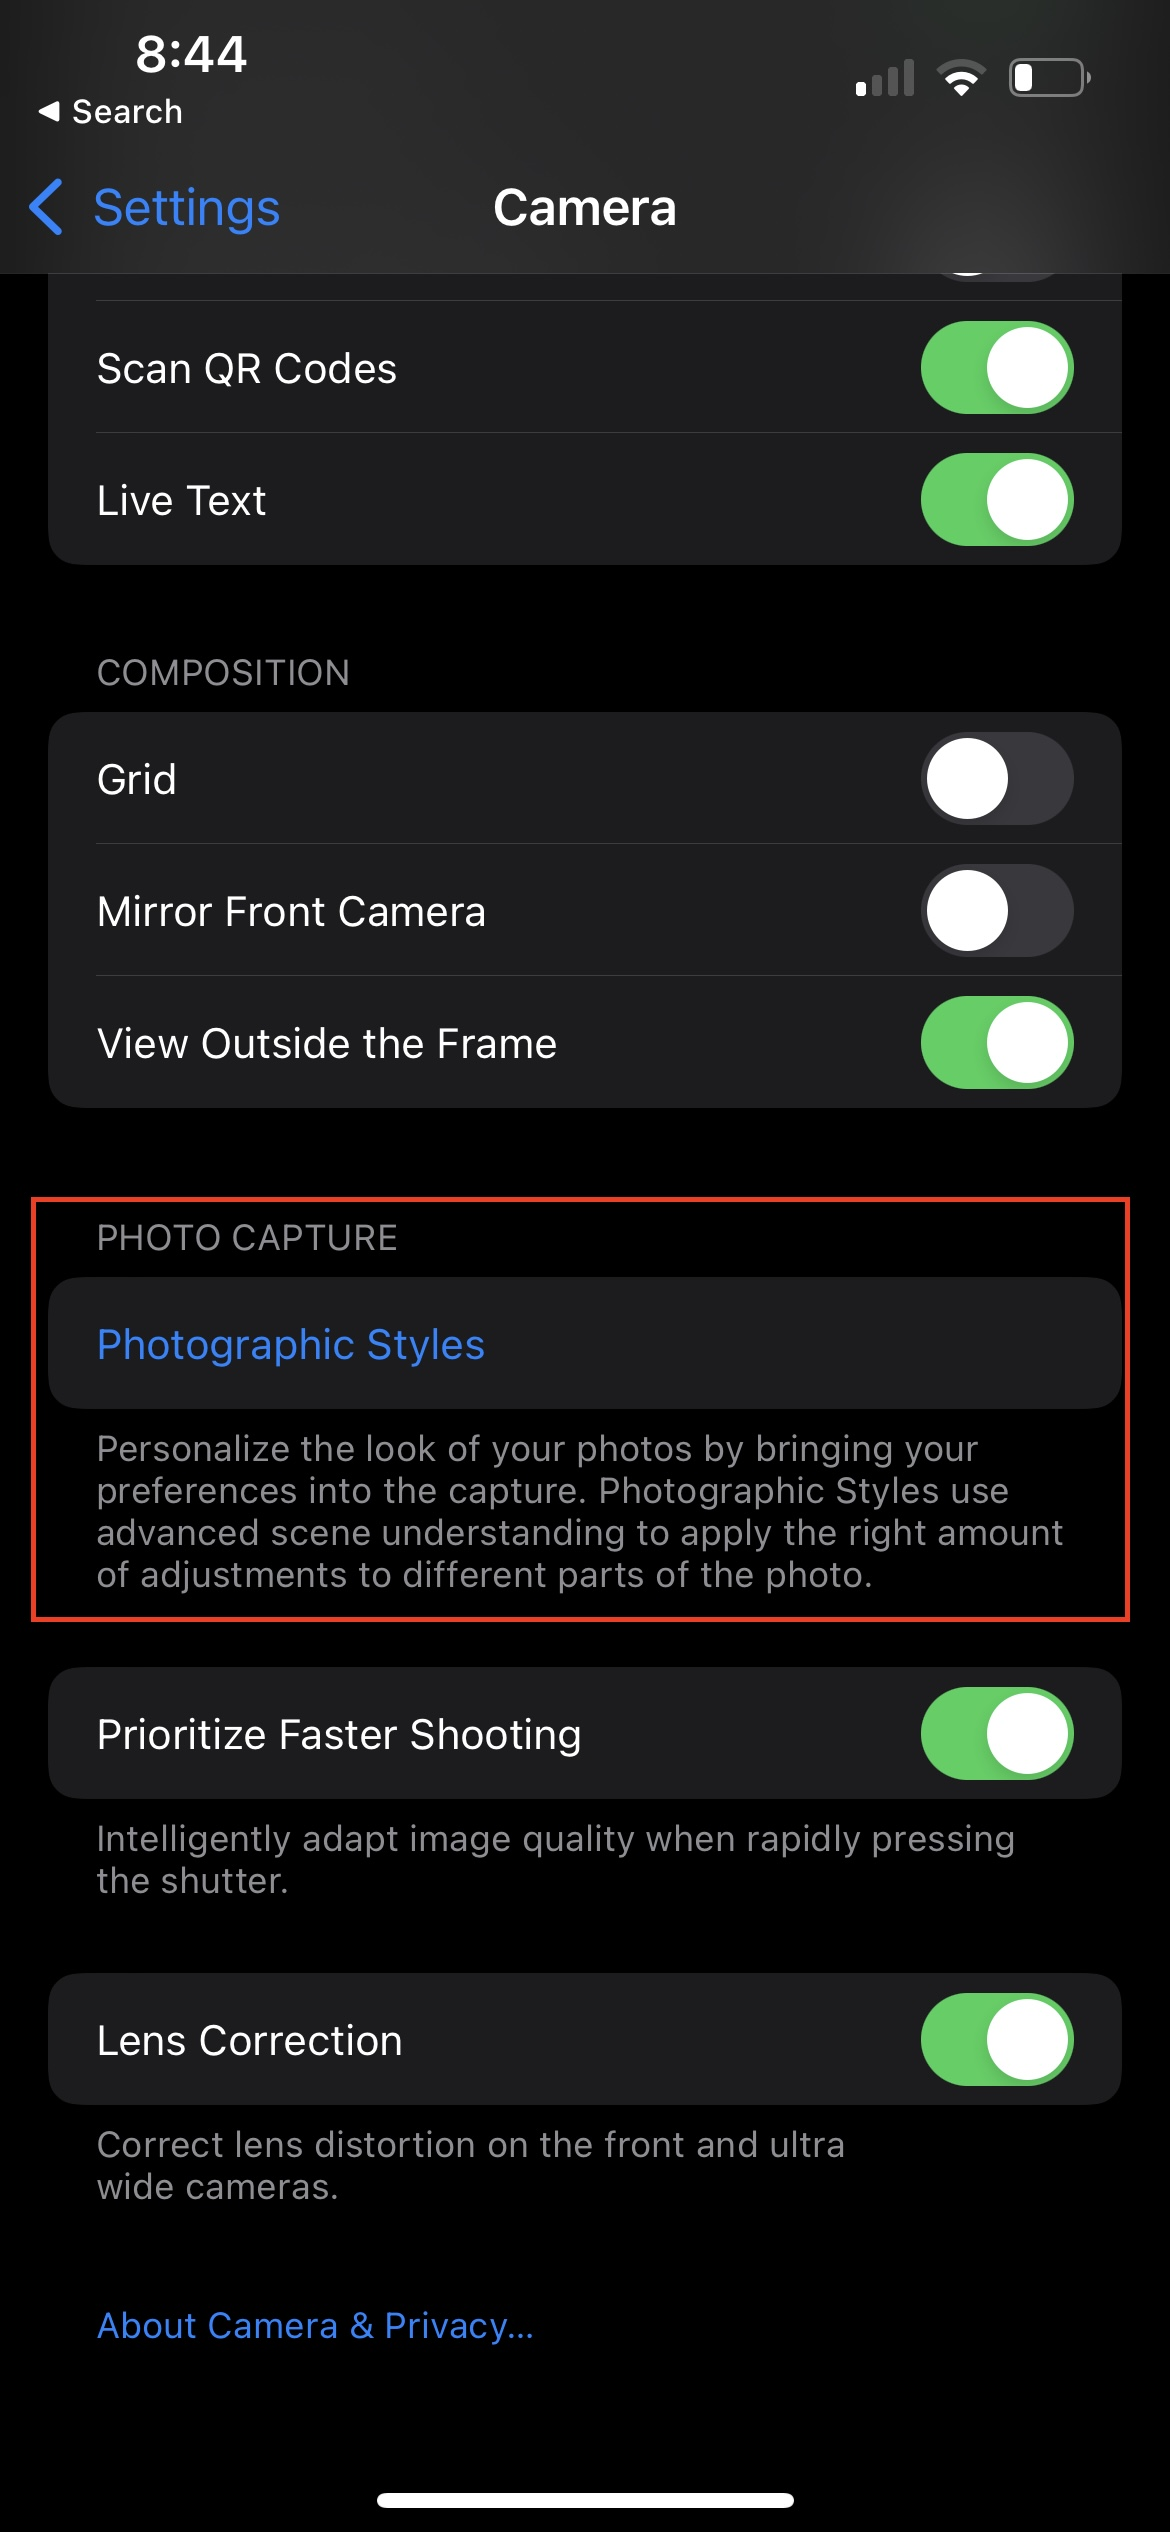 How To Use Photographic Styles on iPhone 2